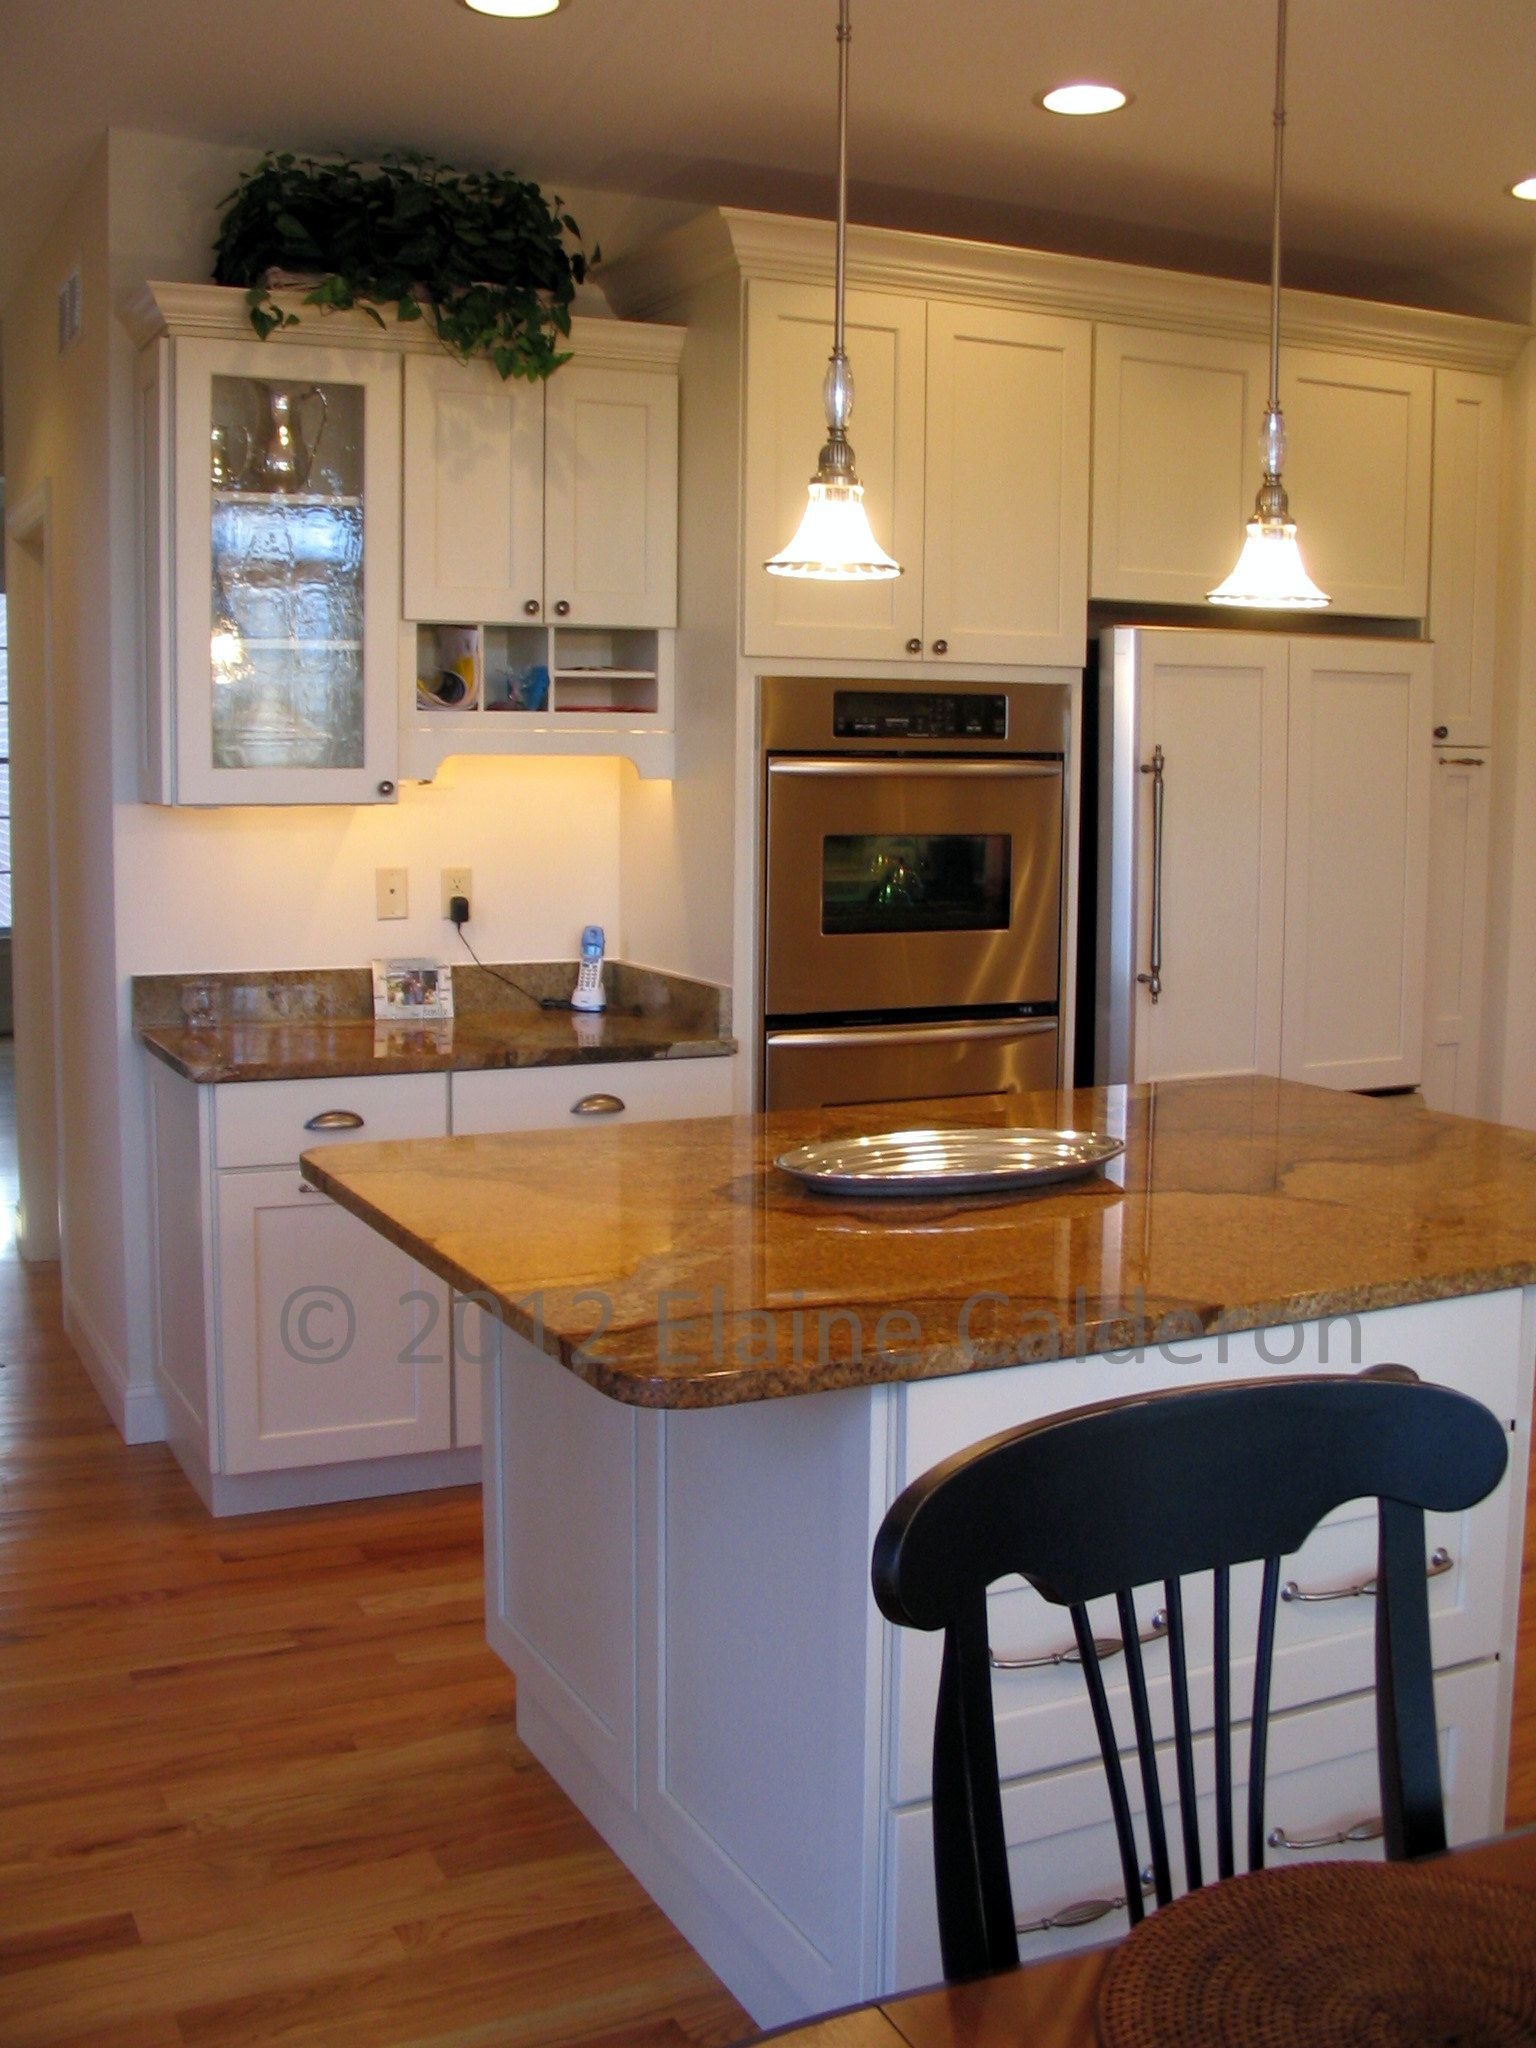 Medallion Kitchen Cabinets Under Cabinet Lights Gold Cabinetry Bayside Maple Full Overlay Door